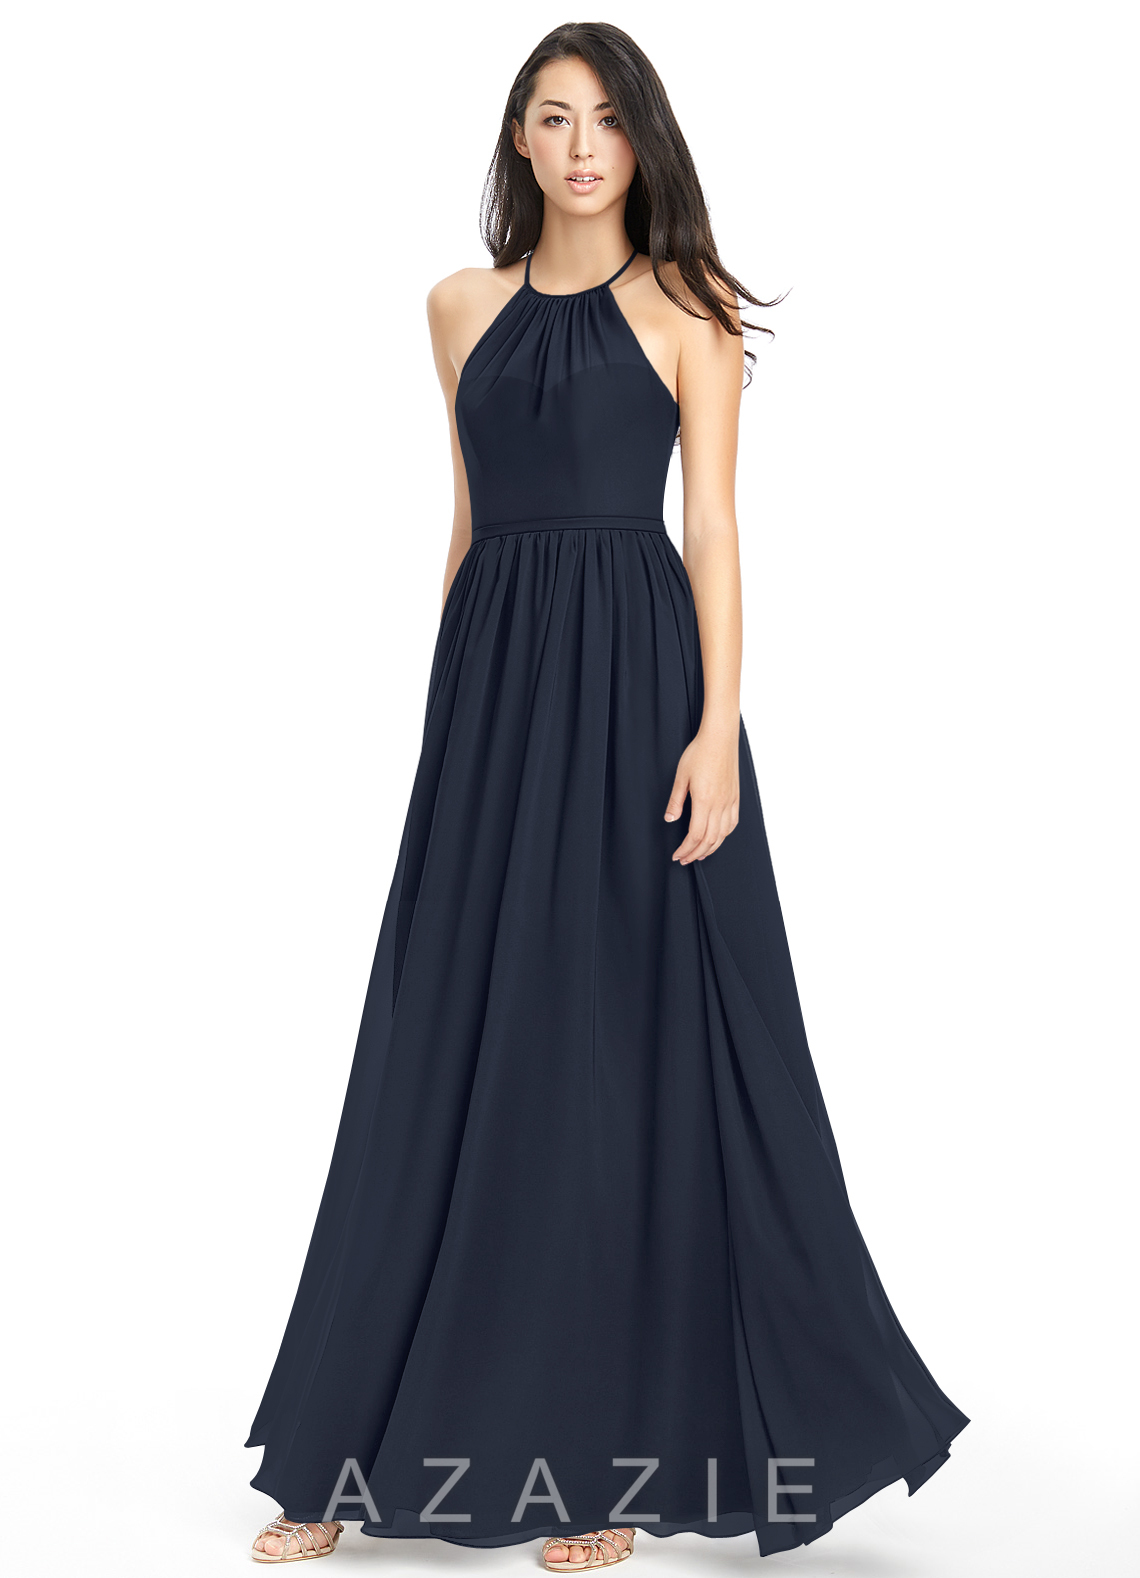 Dark navy bridesmaid dresses dark navy gowns azazie azazie kailyn azazie kailyn ombrellifo Choice Image